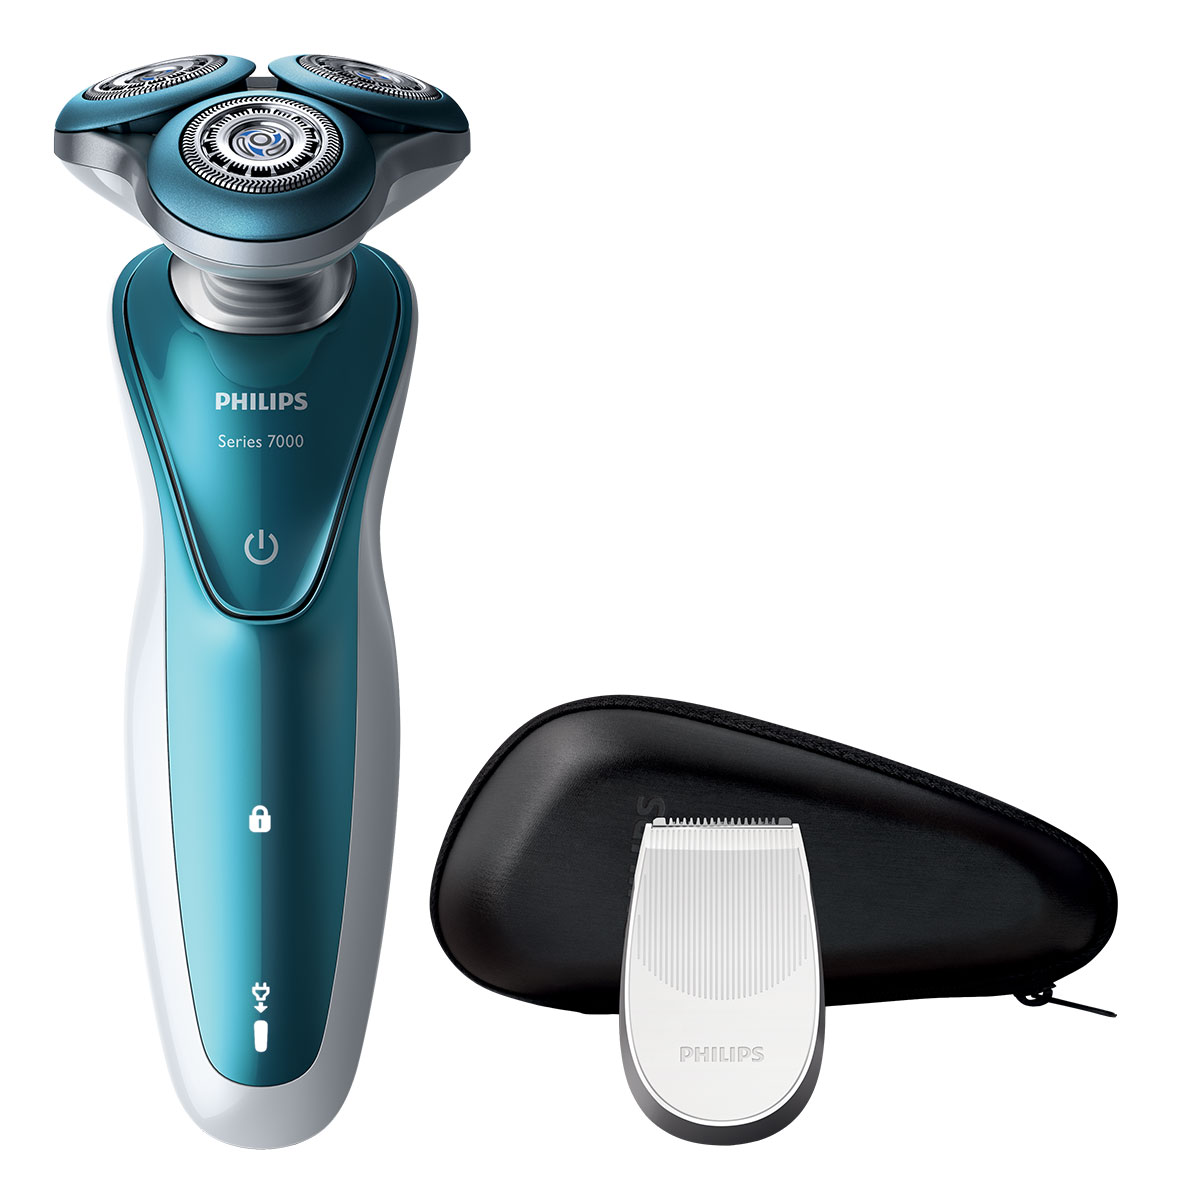 Philips barbermaskine - Series 7000 - S7370/12